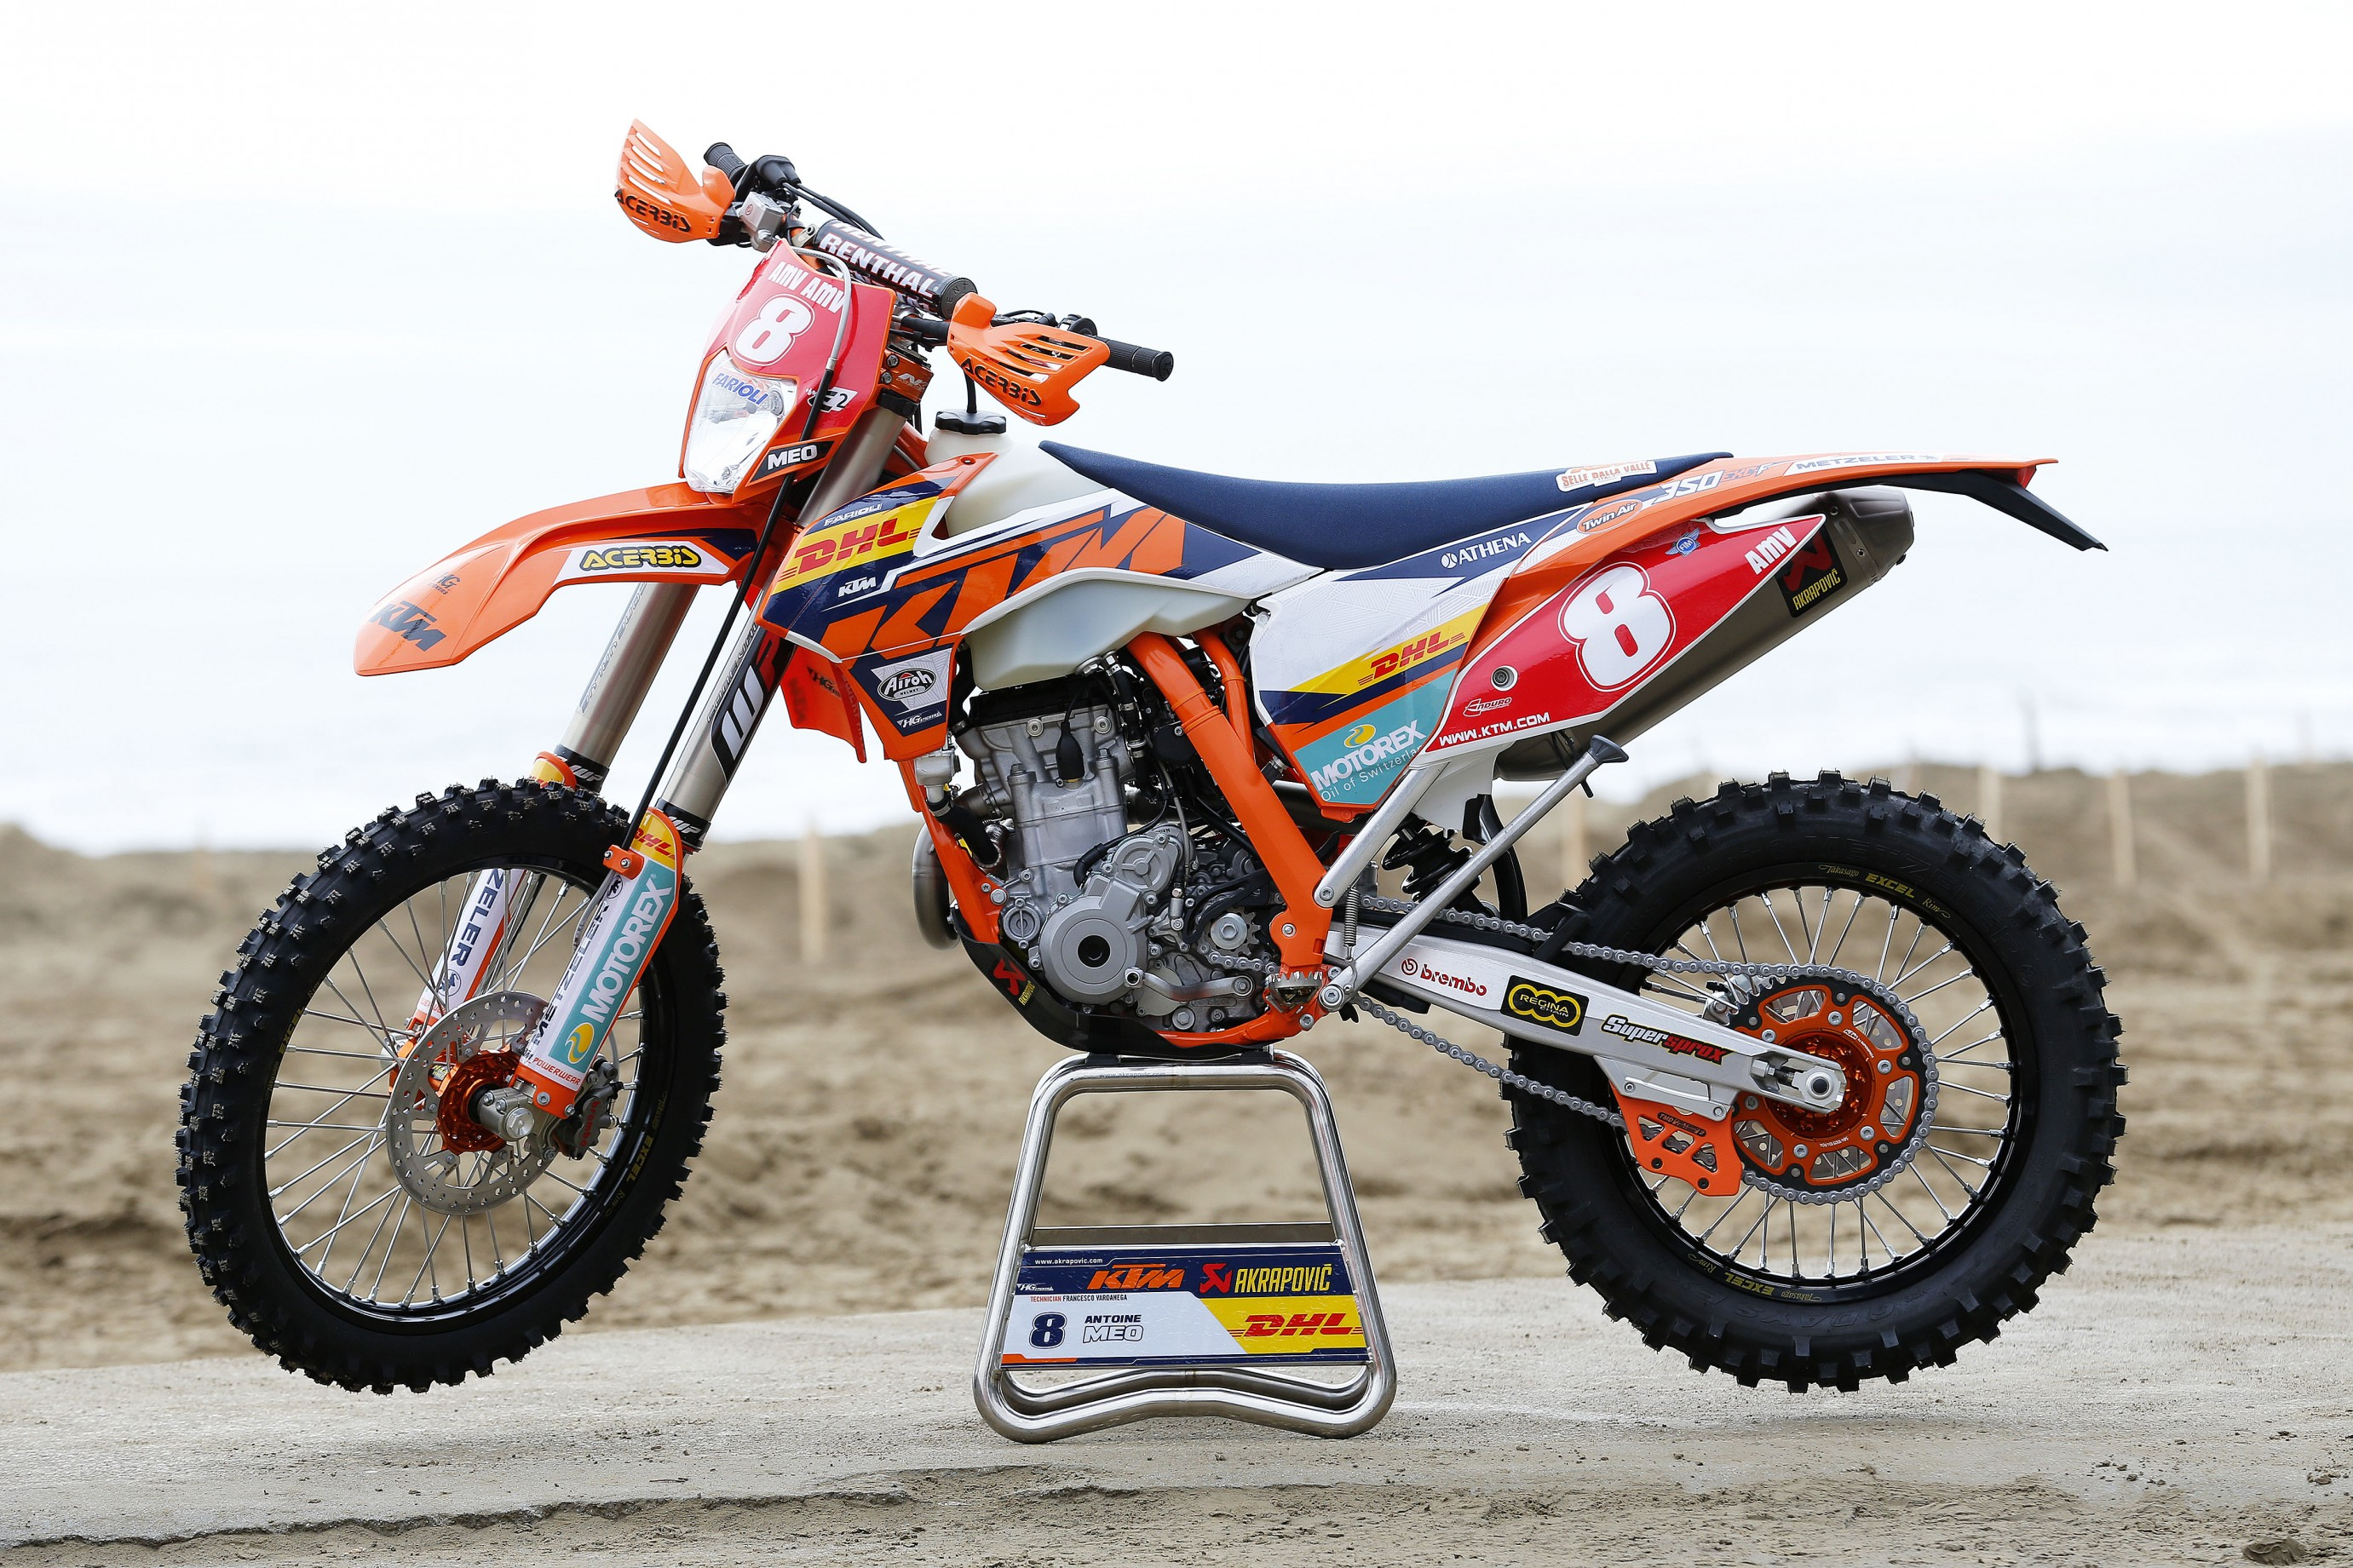 2016 ktm enduro bikes coming soon colwyn bay ktm. Black Bedroom Furniture Sets. Home Design Ideas